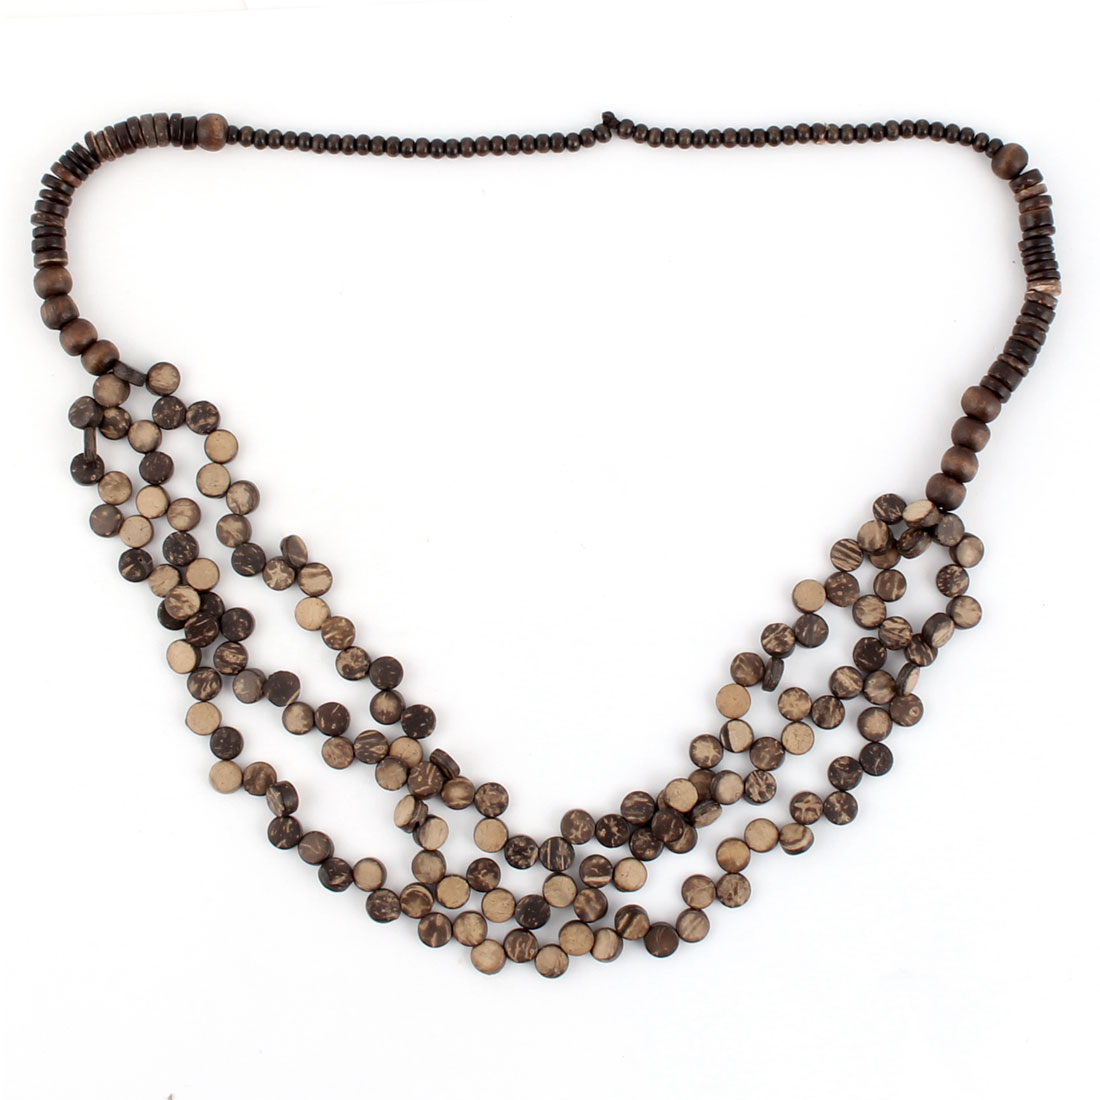 Handcraft Wood Beads Necklace Neck Chain Clothing Accessory 77cm Girth